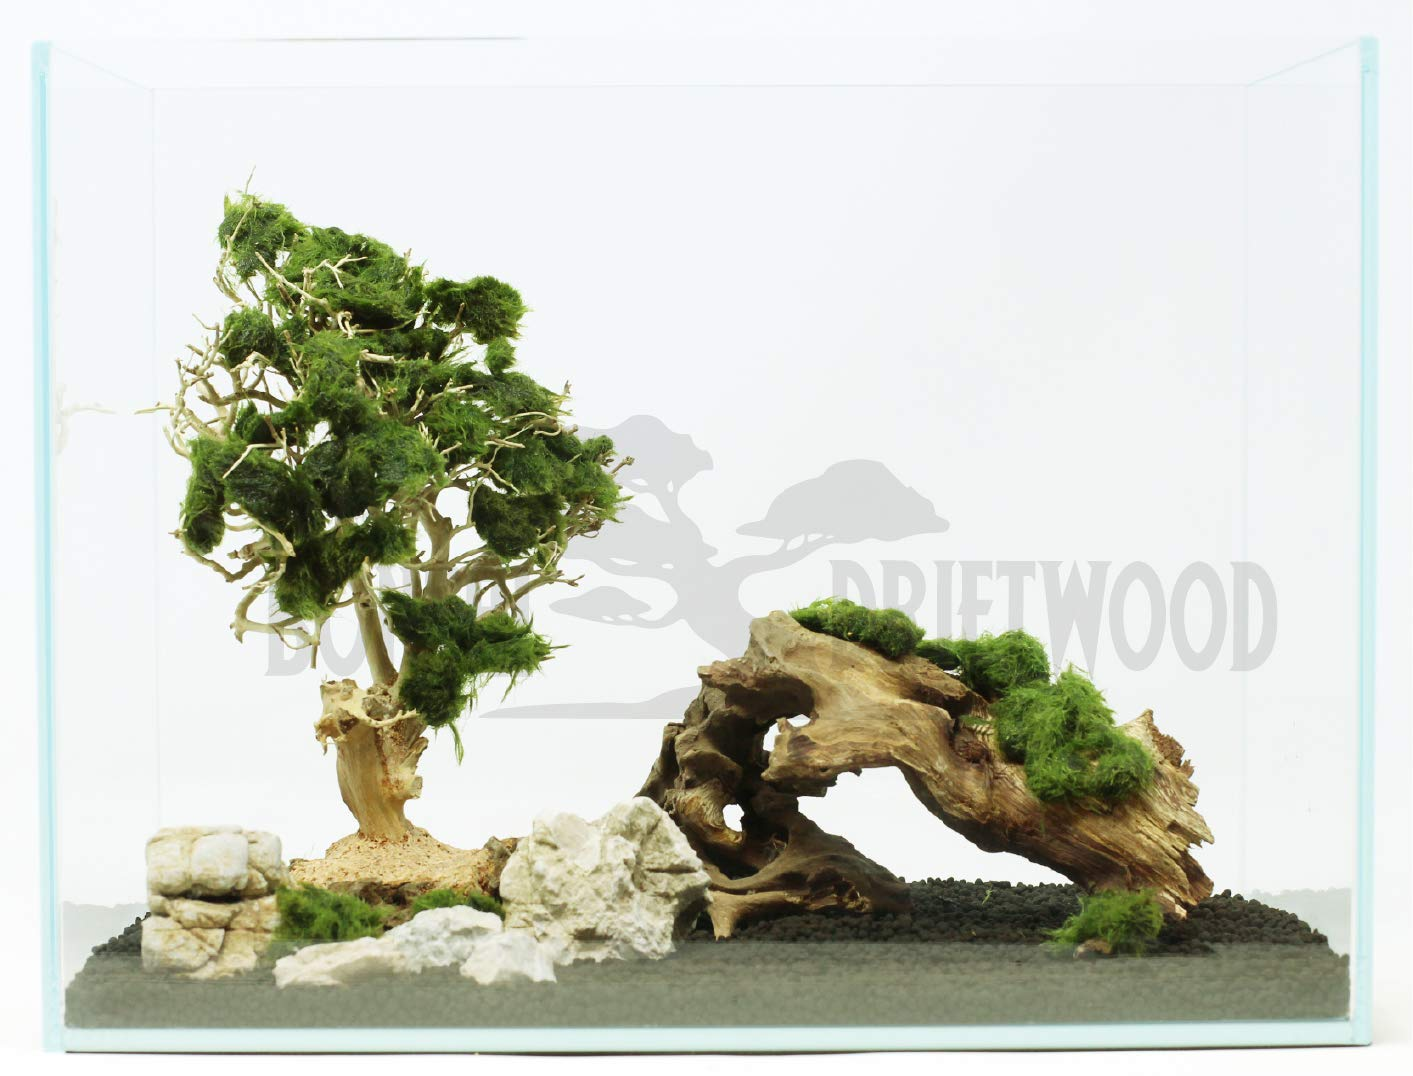 Bonsai Driftwood Aquarium Tree (5 Inch Height) Natural, Handcrafted Fish Tank Decoration | Helps Balance Water pH Levels, Stabilizes Environments | Easy to Install by Bonsai Driftwood (Image #9)